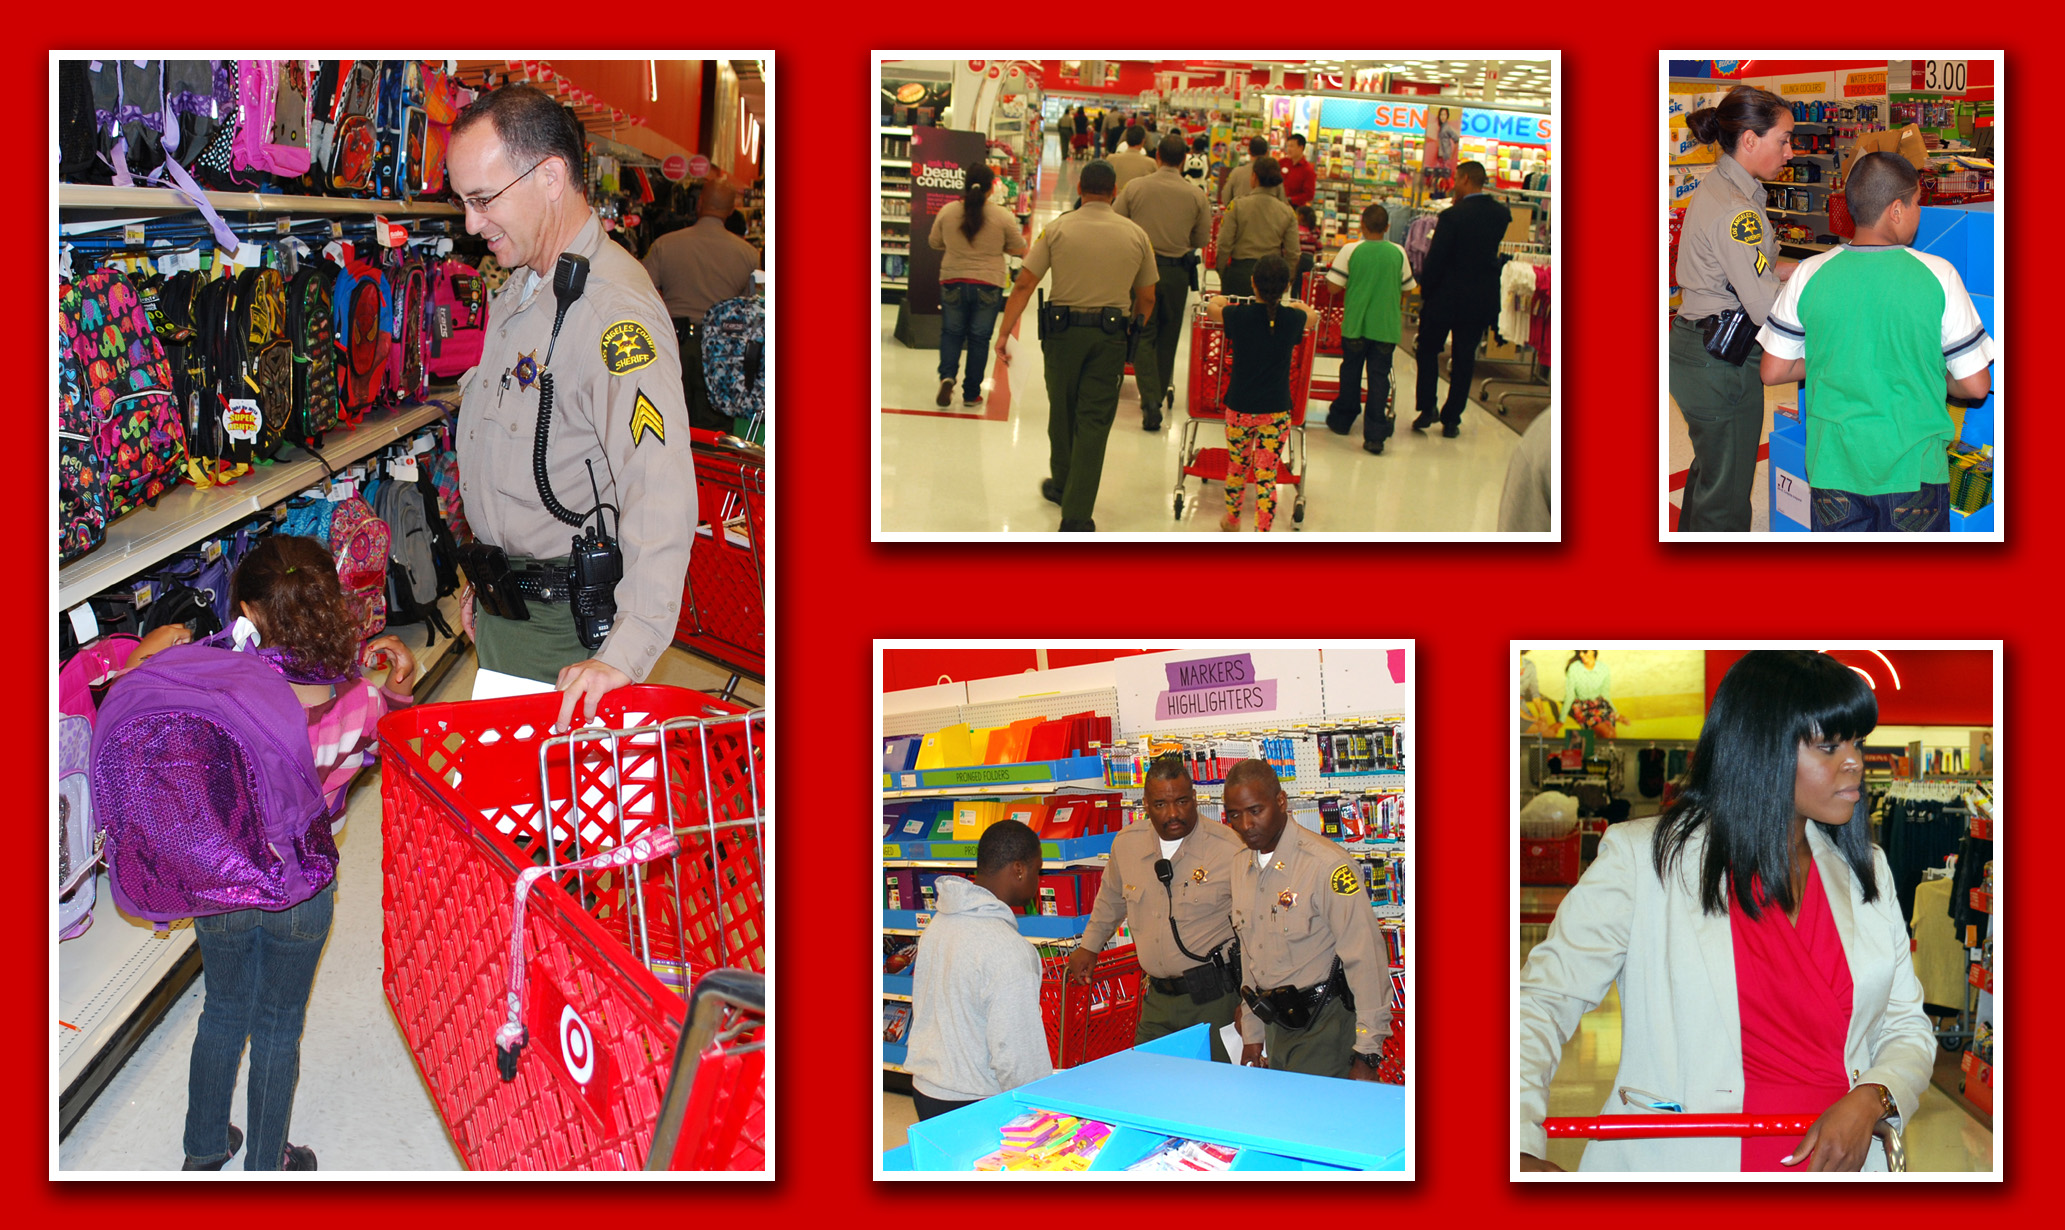 Compton Sheriff's Deputies and City Official escorting kids on shopping spree